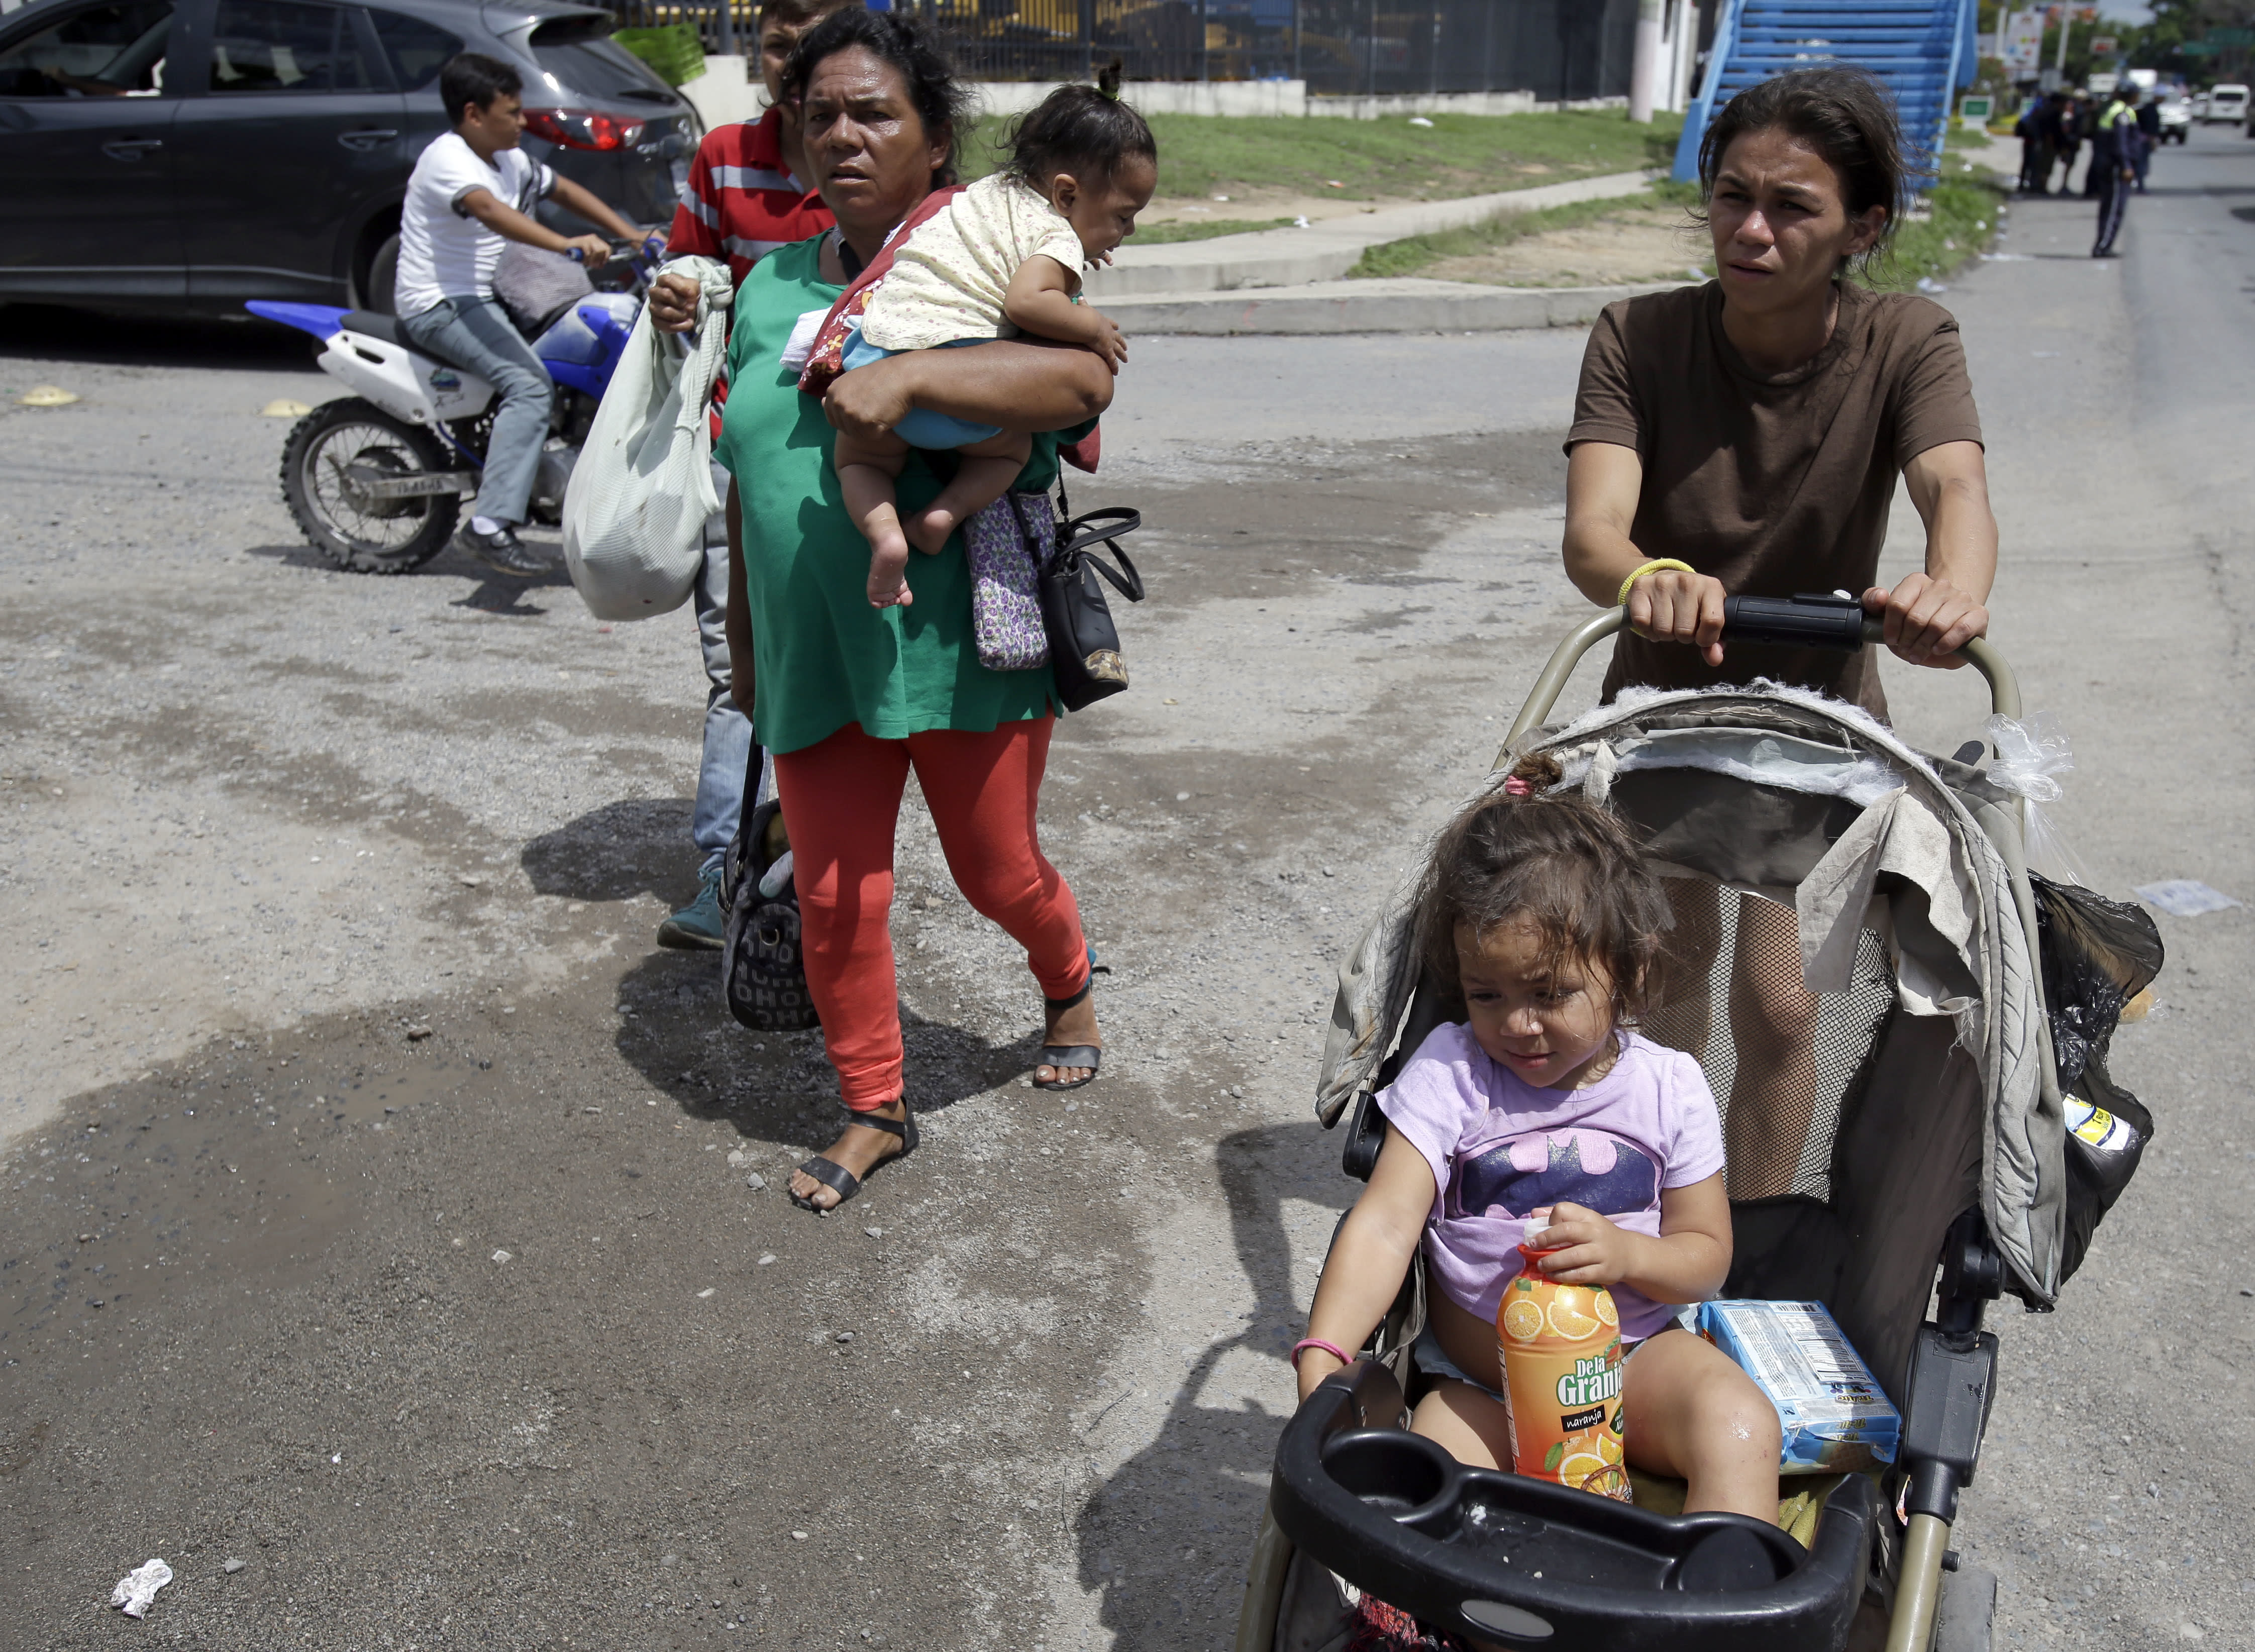 A couple of Hondruasn migrant mothers carry their children as they continue on their trek to the United States, in Teculutan, Guatemala, Wednesday, Oct. 17, 2018. The group of some 2,000 Honduran migrants hit the road in Guatemala again Wednesday, hoping to reach the United States despite President Donald Trump's threat to cut off aid to Central American countries that don't stop them. (AP Photo/Moises Castillo)